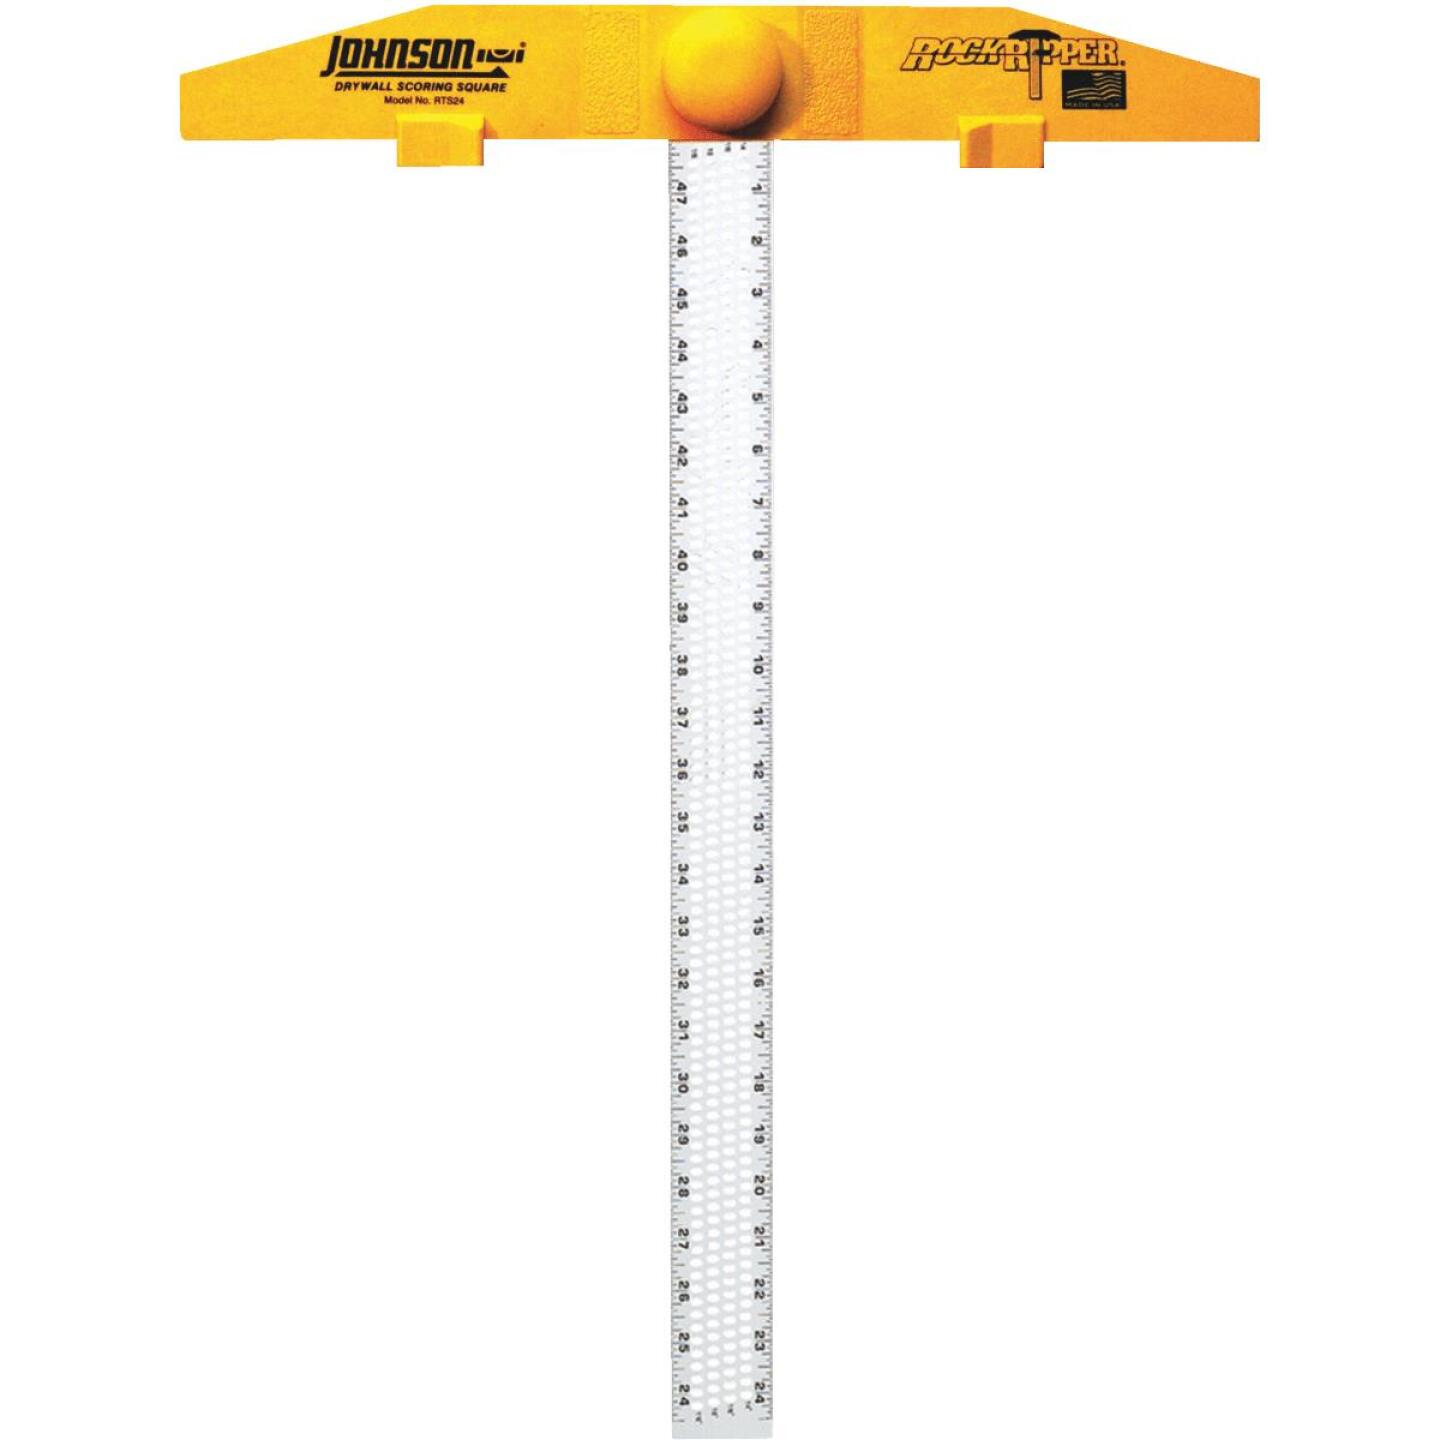 Johnson Level RockRipper 24 In. Aluminum English/Metric Scoring Drywall Square Image 1